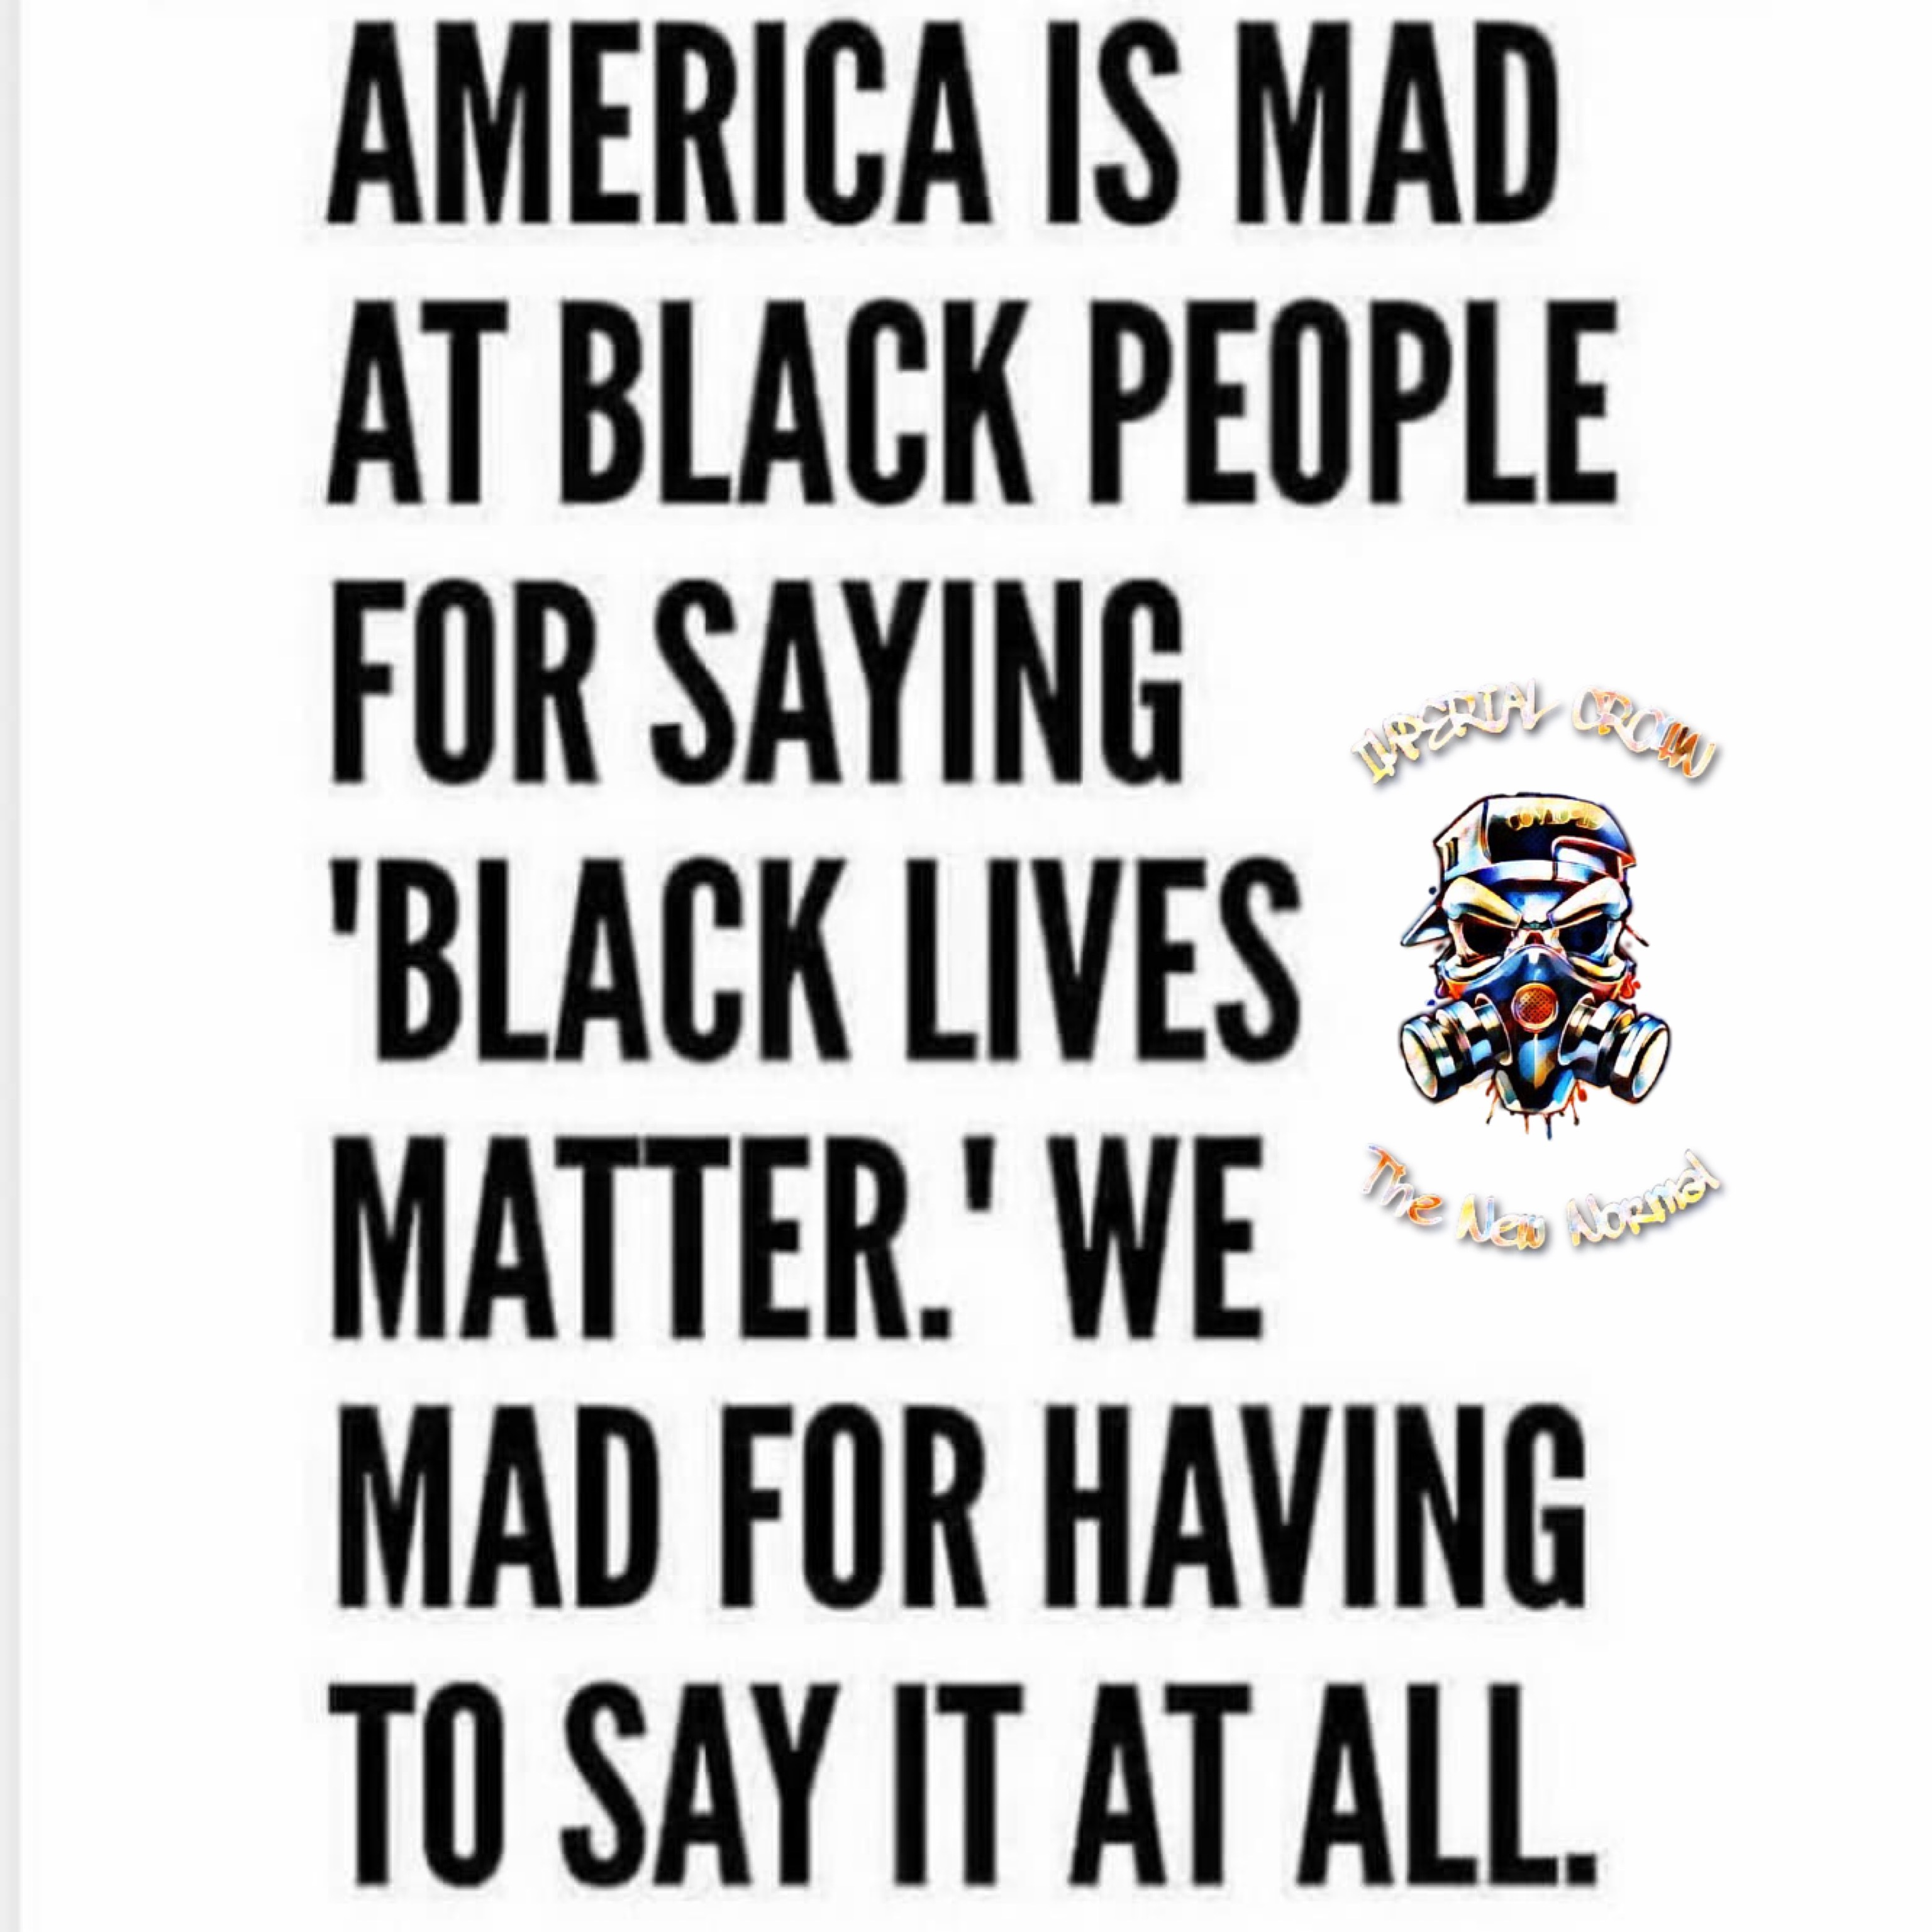 America is mad at black people for saying black lives matter